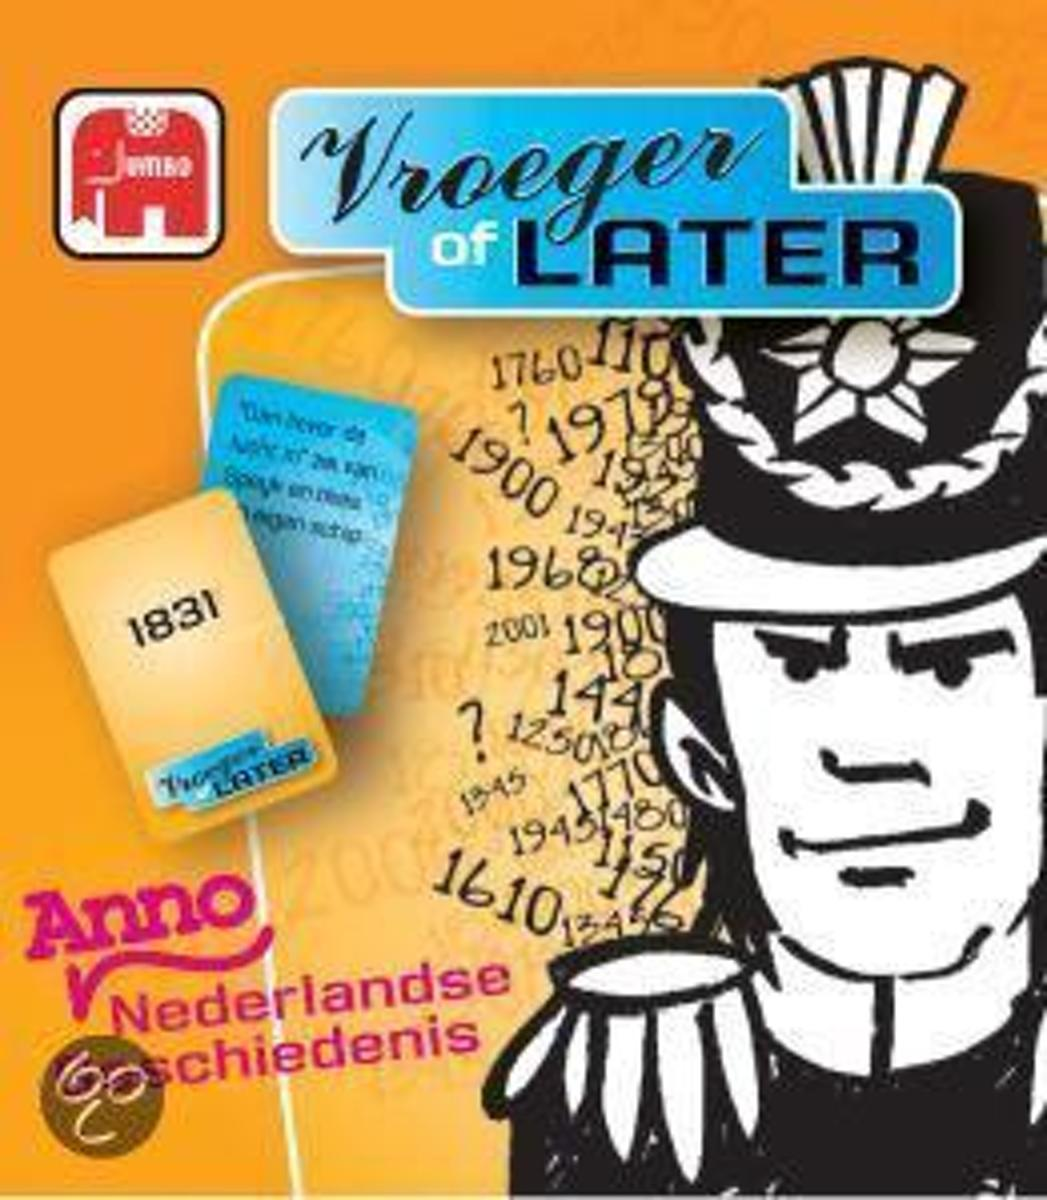 Vroeger of Later